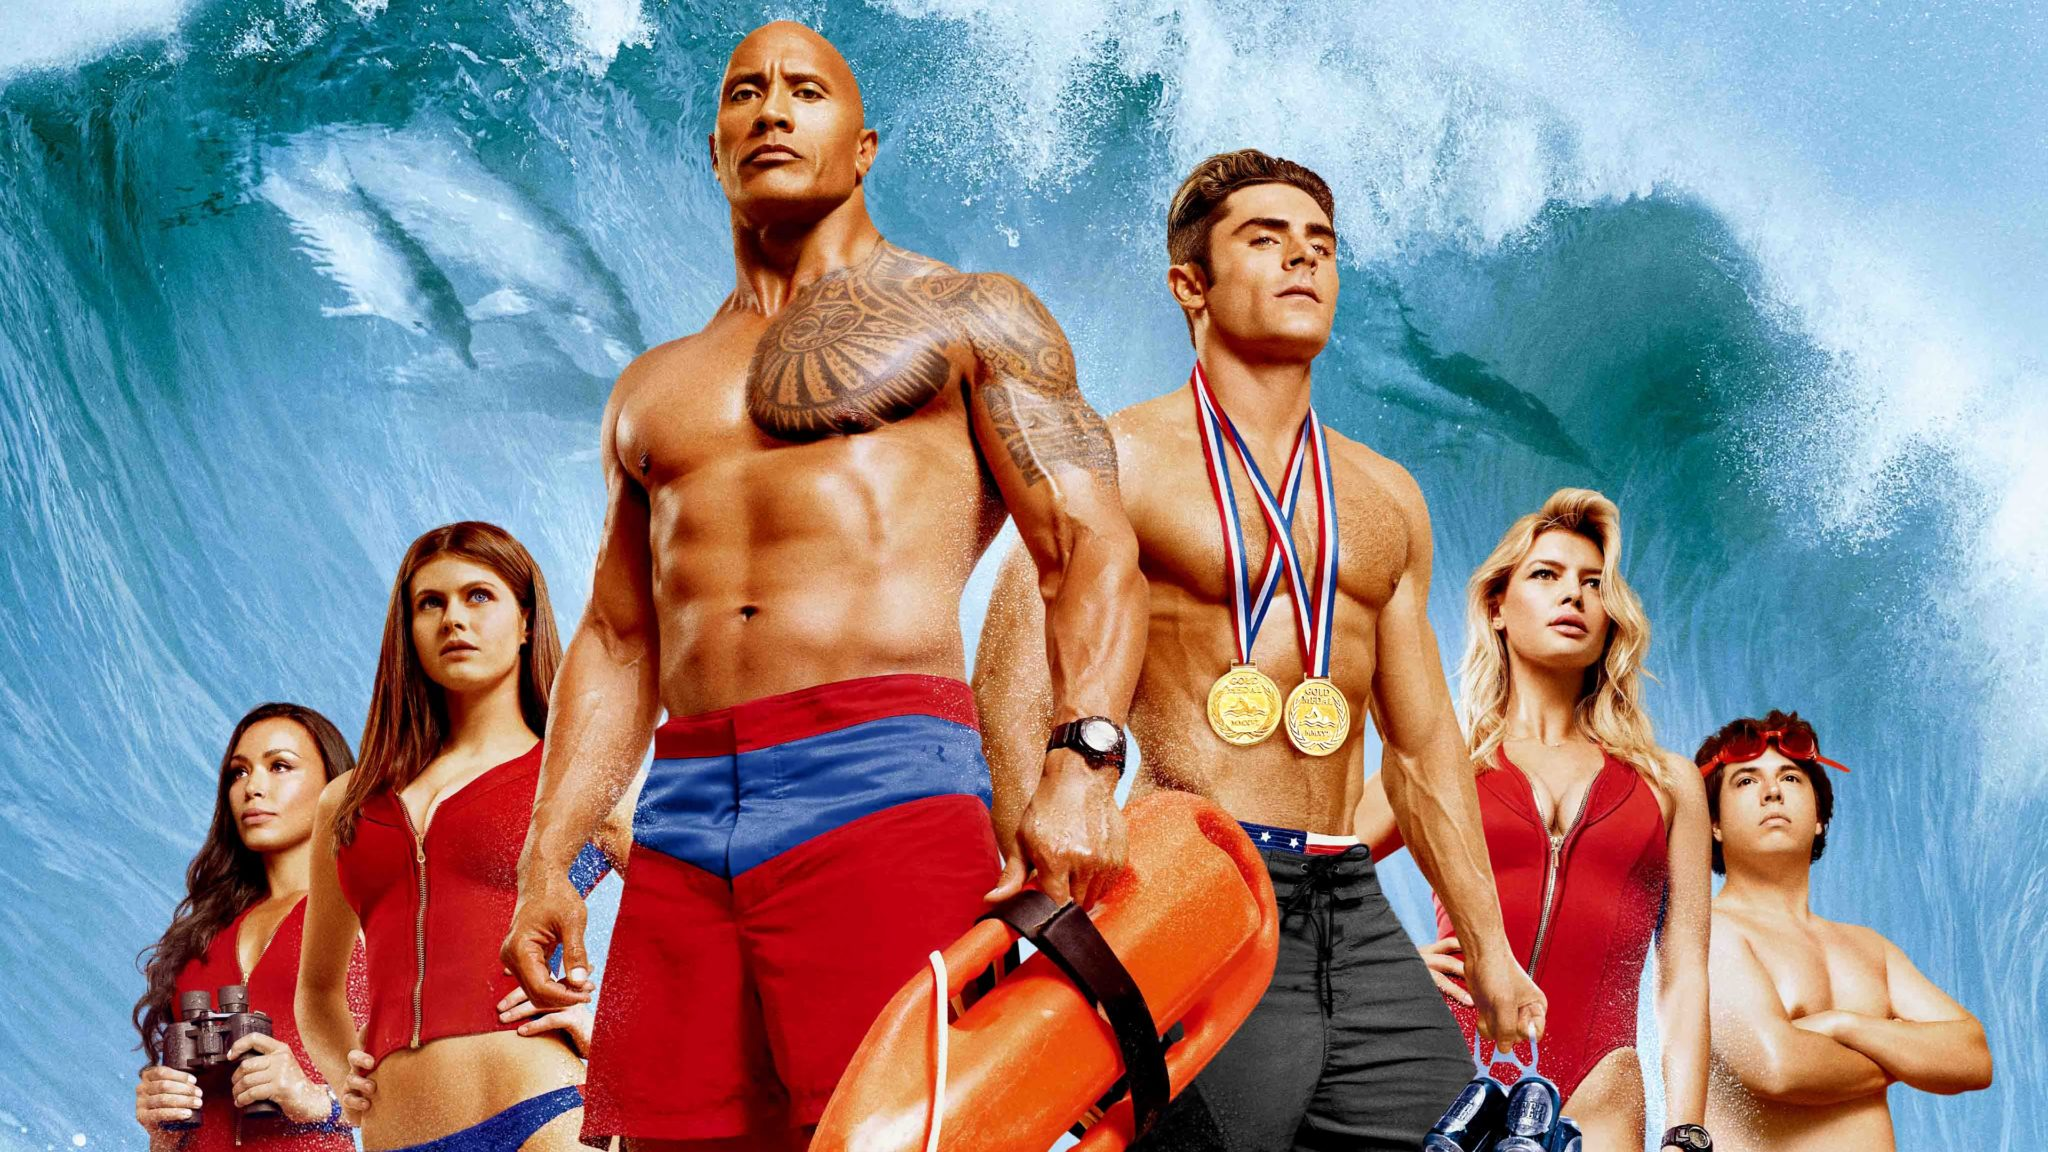 'Baywatch' is a scattershot, filthy, and sometimes funny summer comedy